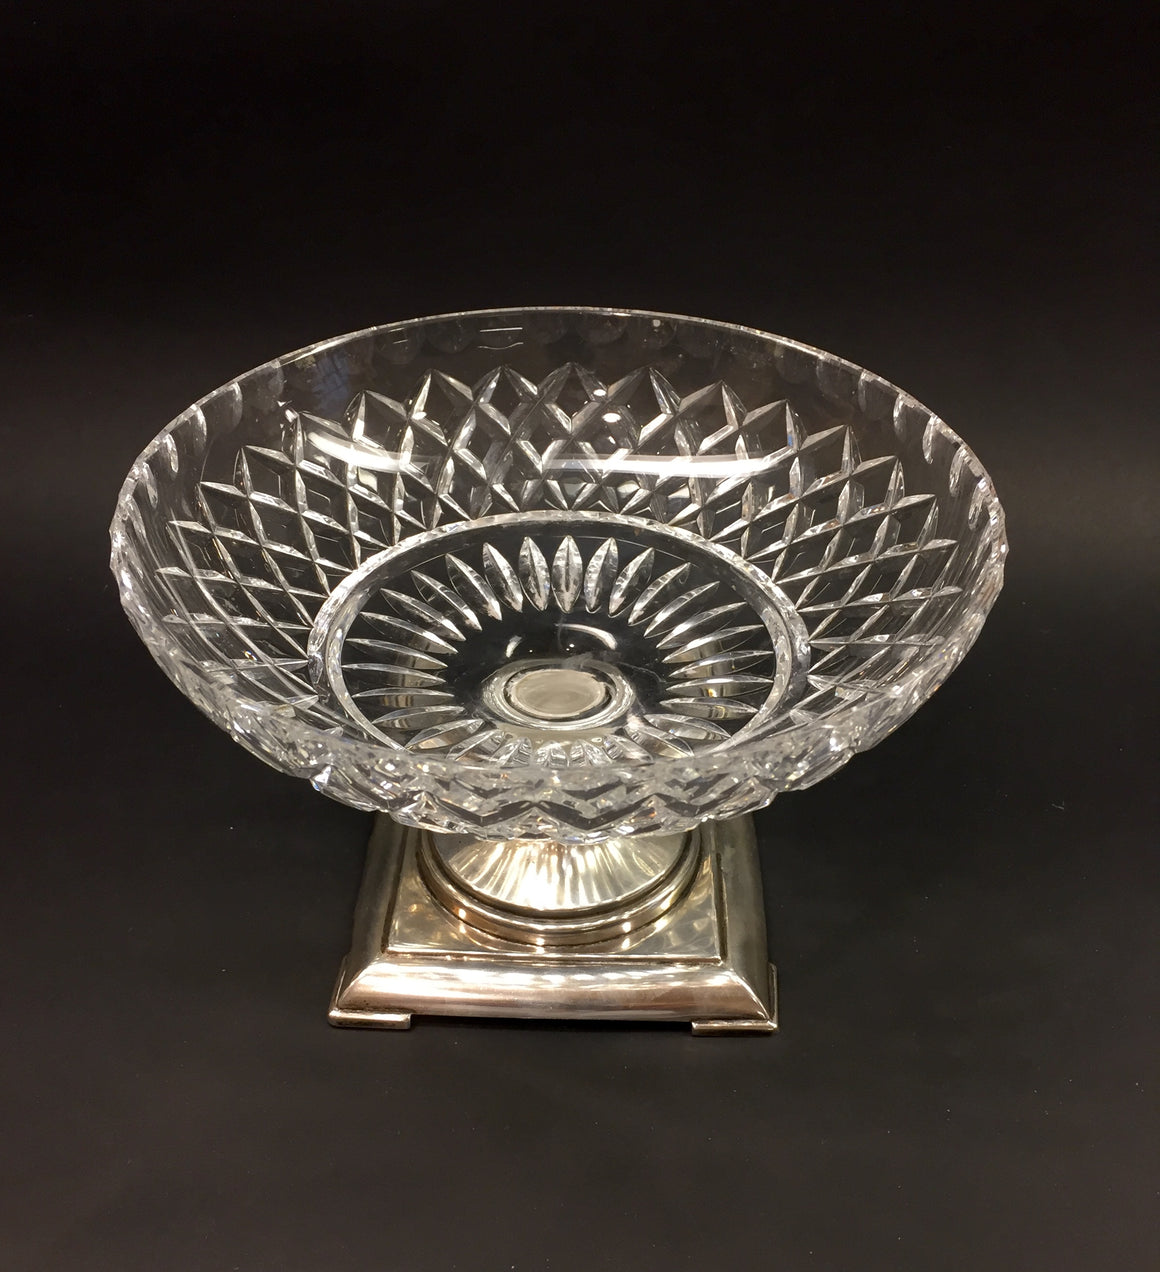 Vintage HAWKES Clear Diamond-Cut Crystal Sterling Silver Base Footed Bowl Compote